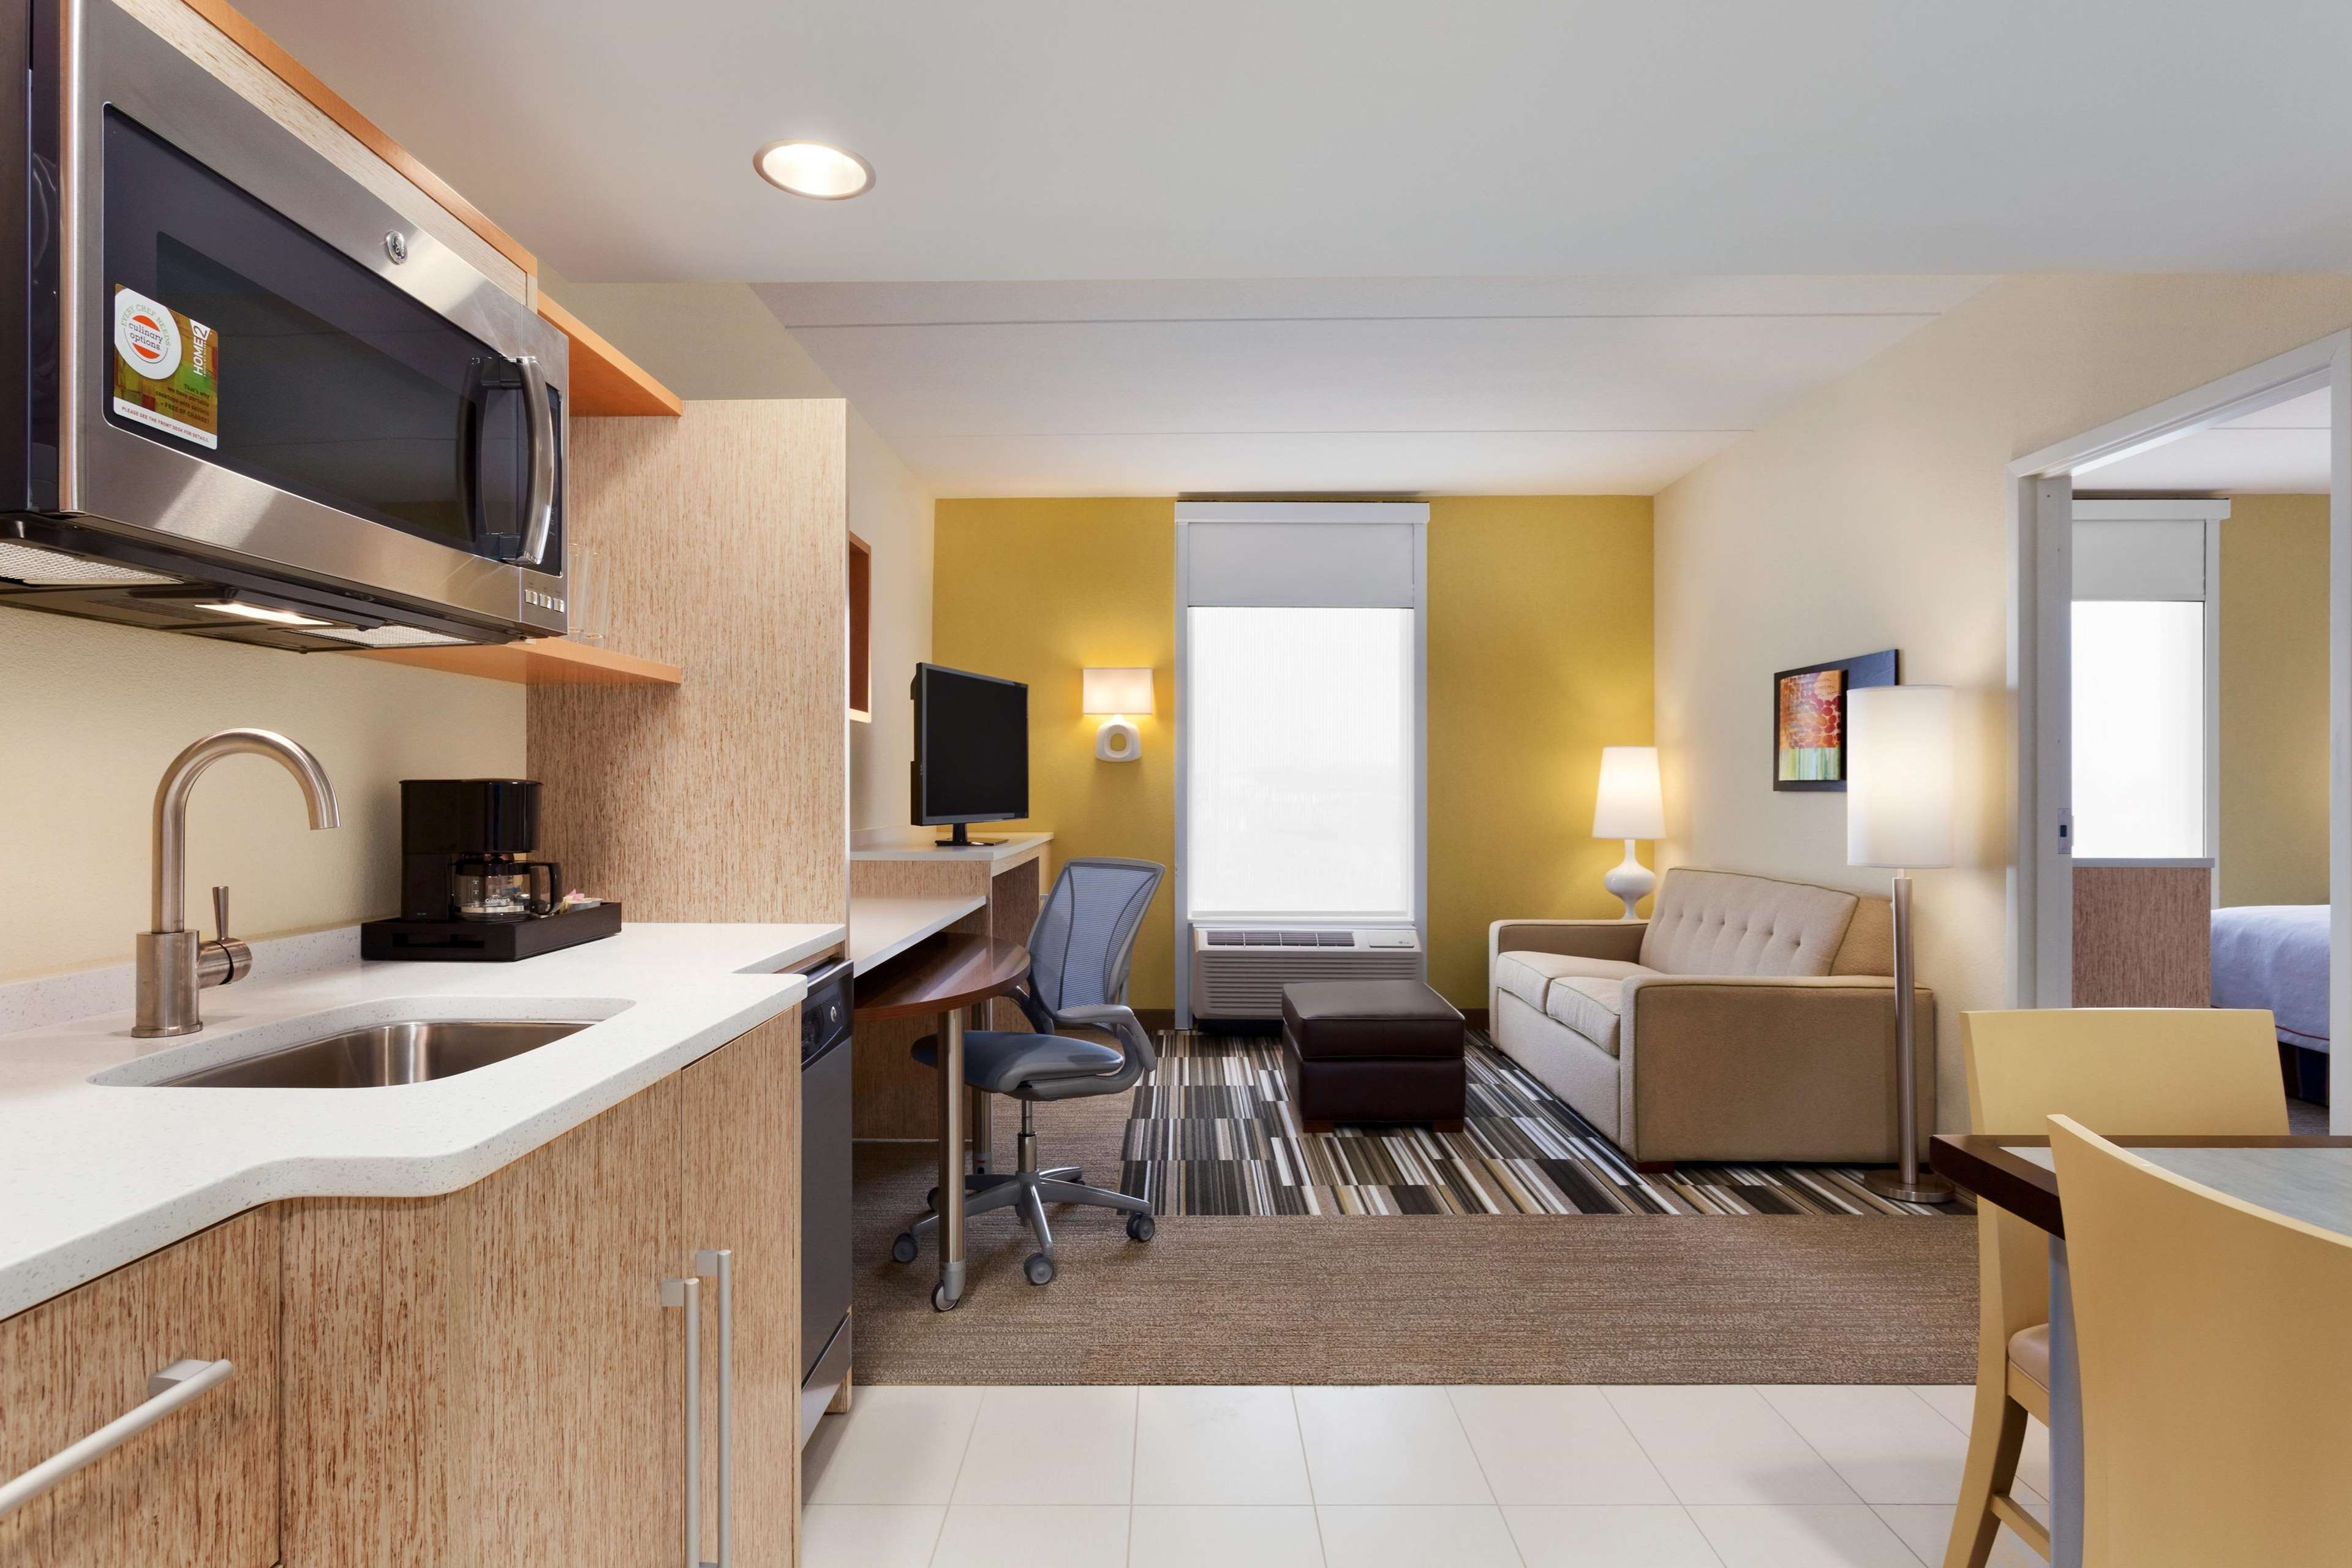 Home2 Suites by Hilton Baltimore / Aberdeen, MD image 9